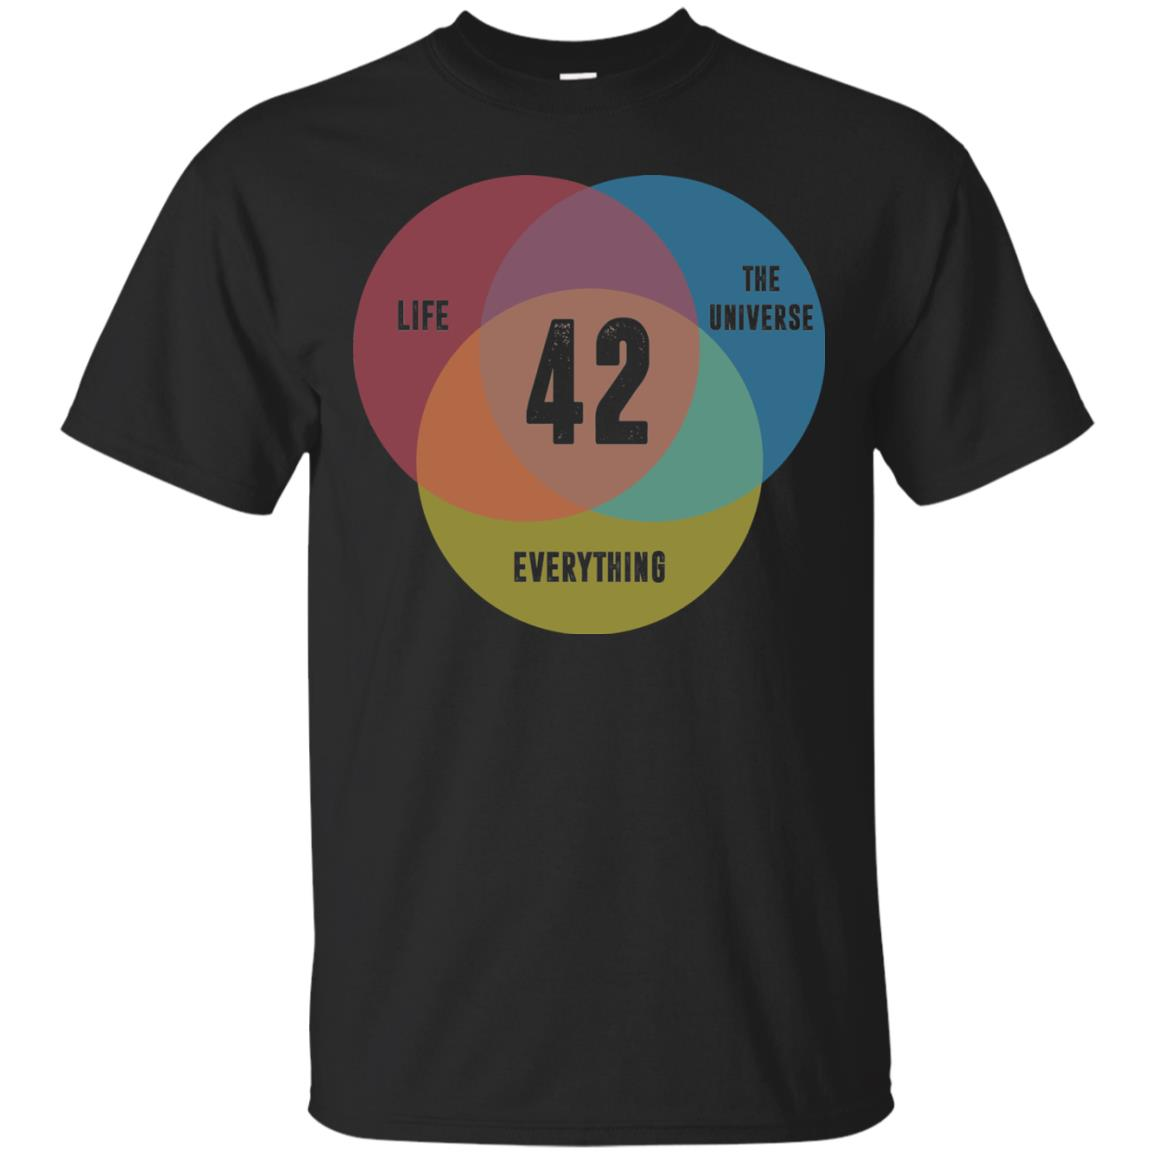 image 469 venn diagram 42 life, the universe & everything t shirt shirt diagram at couponss.co